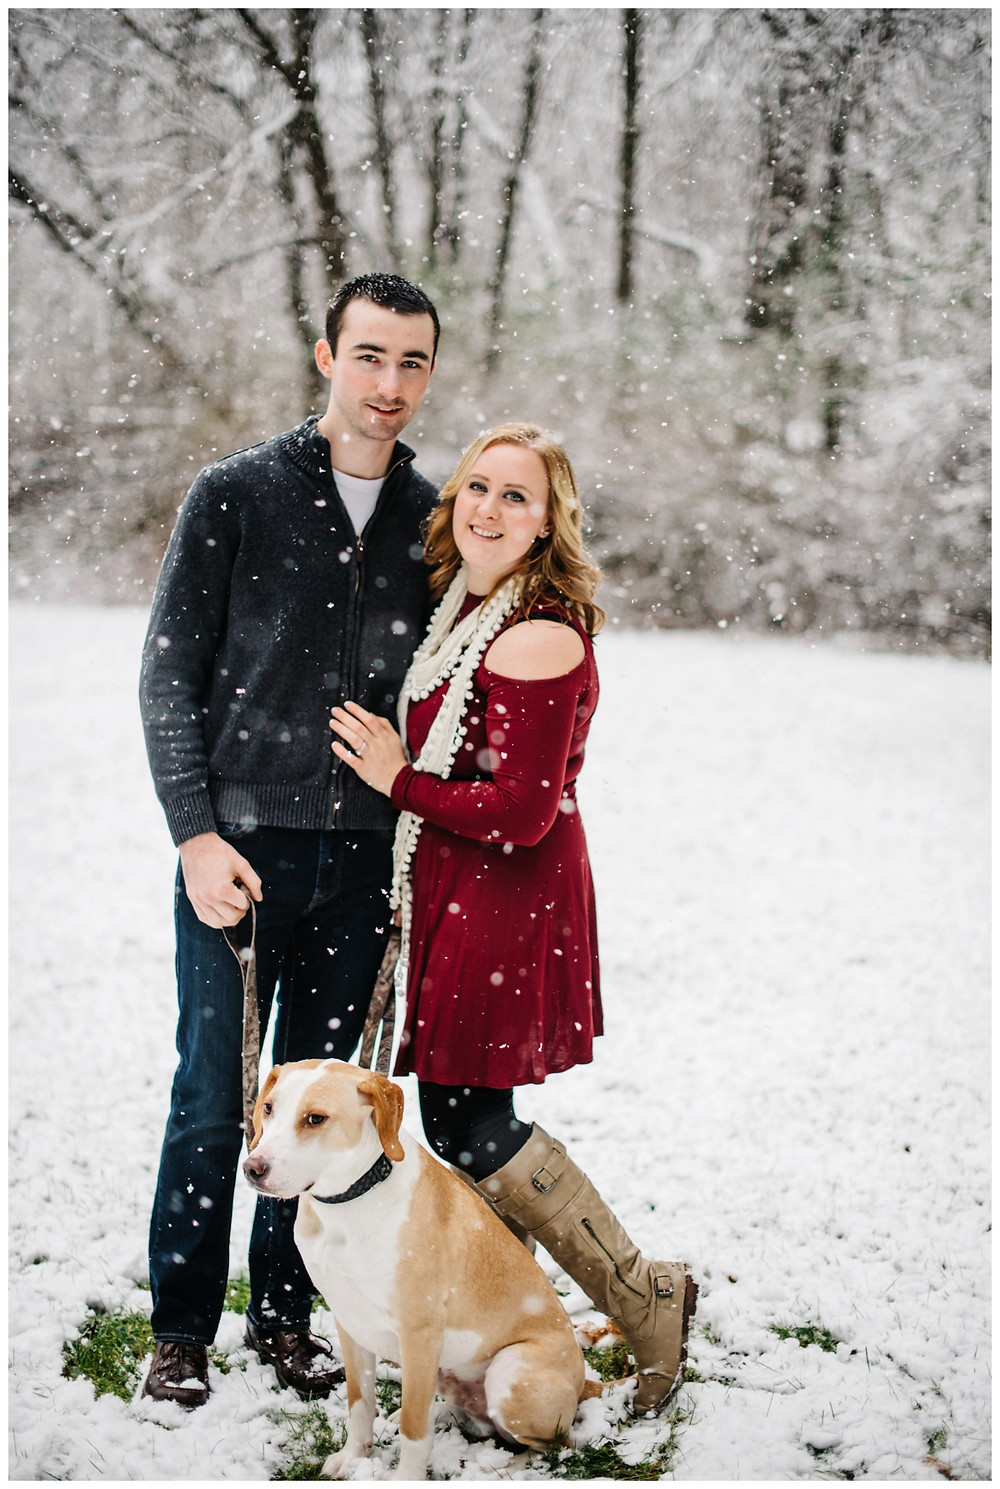 engaged-couple-with-pup-at-snowy-sheboygan-engagement-session-by-appleton-wedding-photographer-kyra-rane-photography